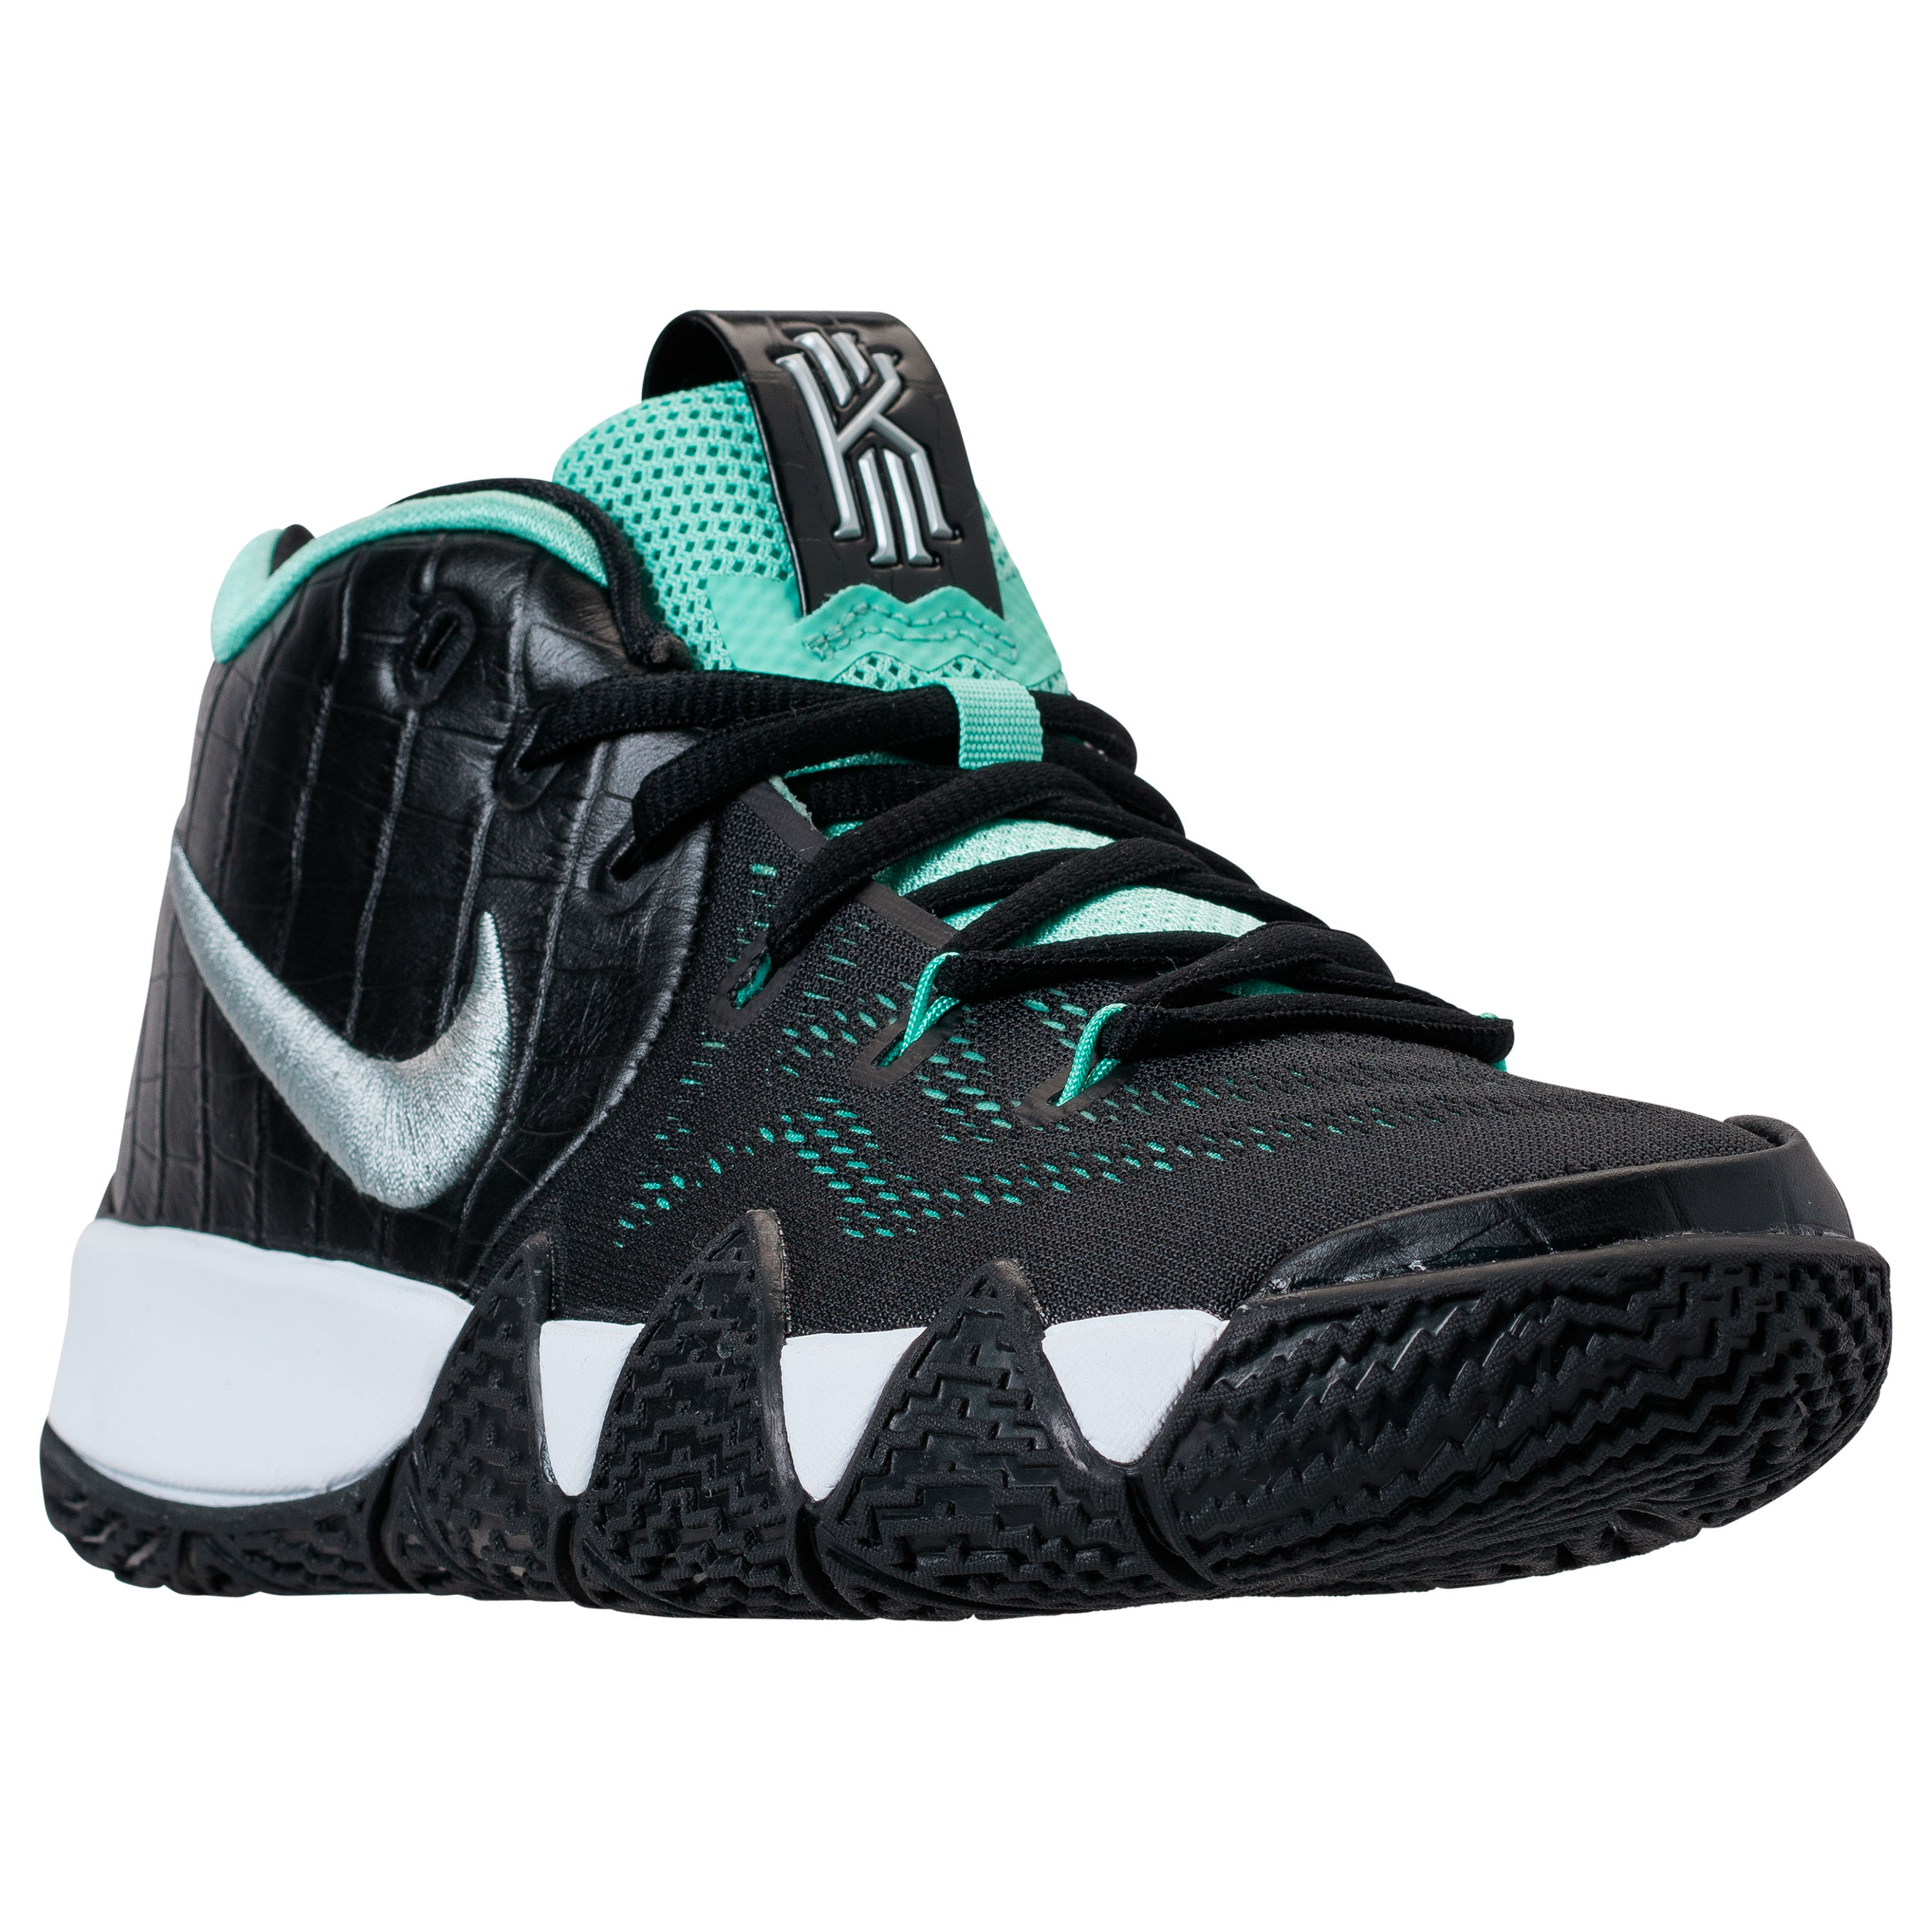 timeless design 5be1b 031ed A Tiffany Nike Kyrie 4 Colorway is Coming Soon - WearTesters